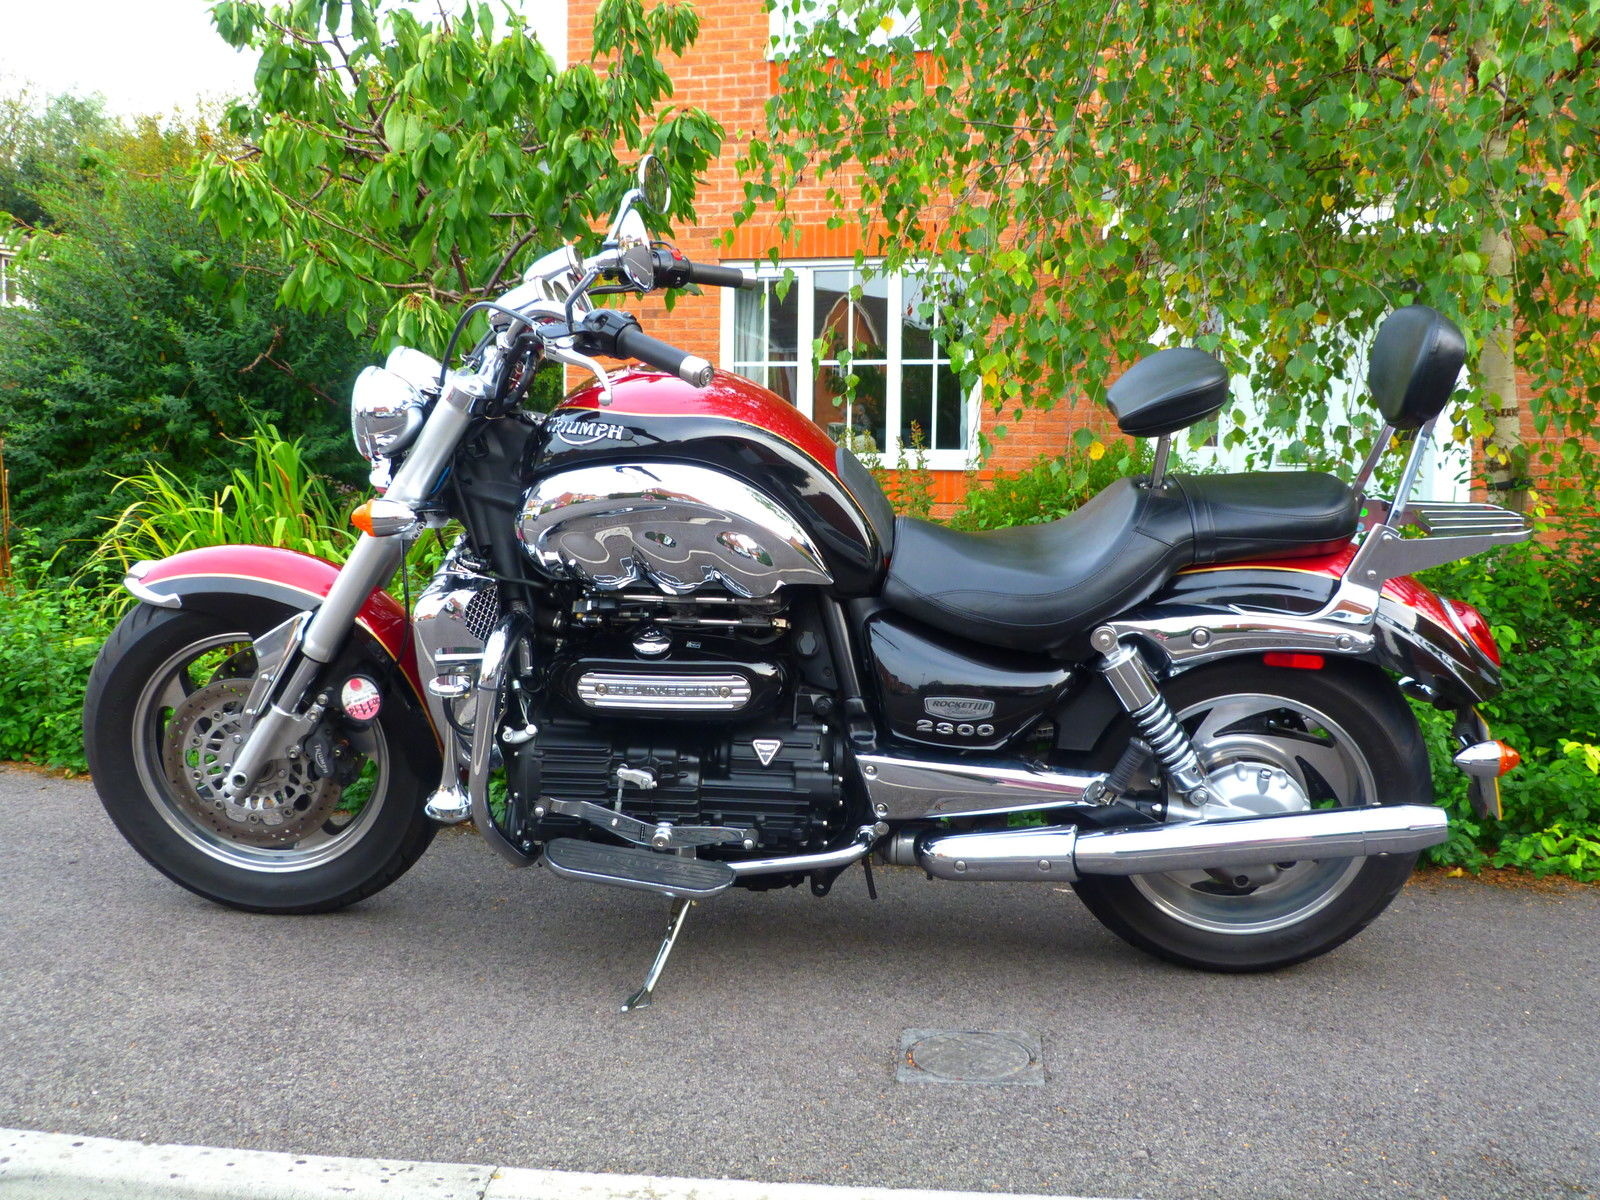 triumph rocket iii motorcycle - photo #30